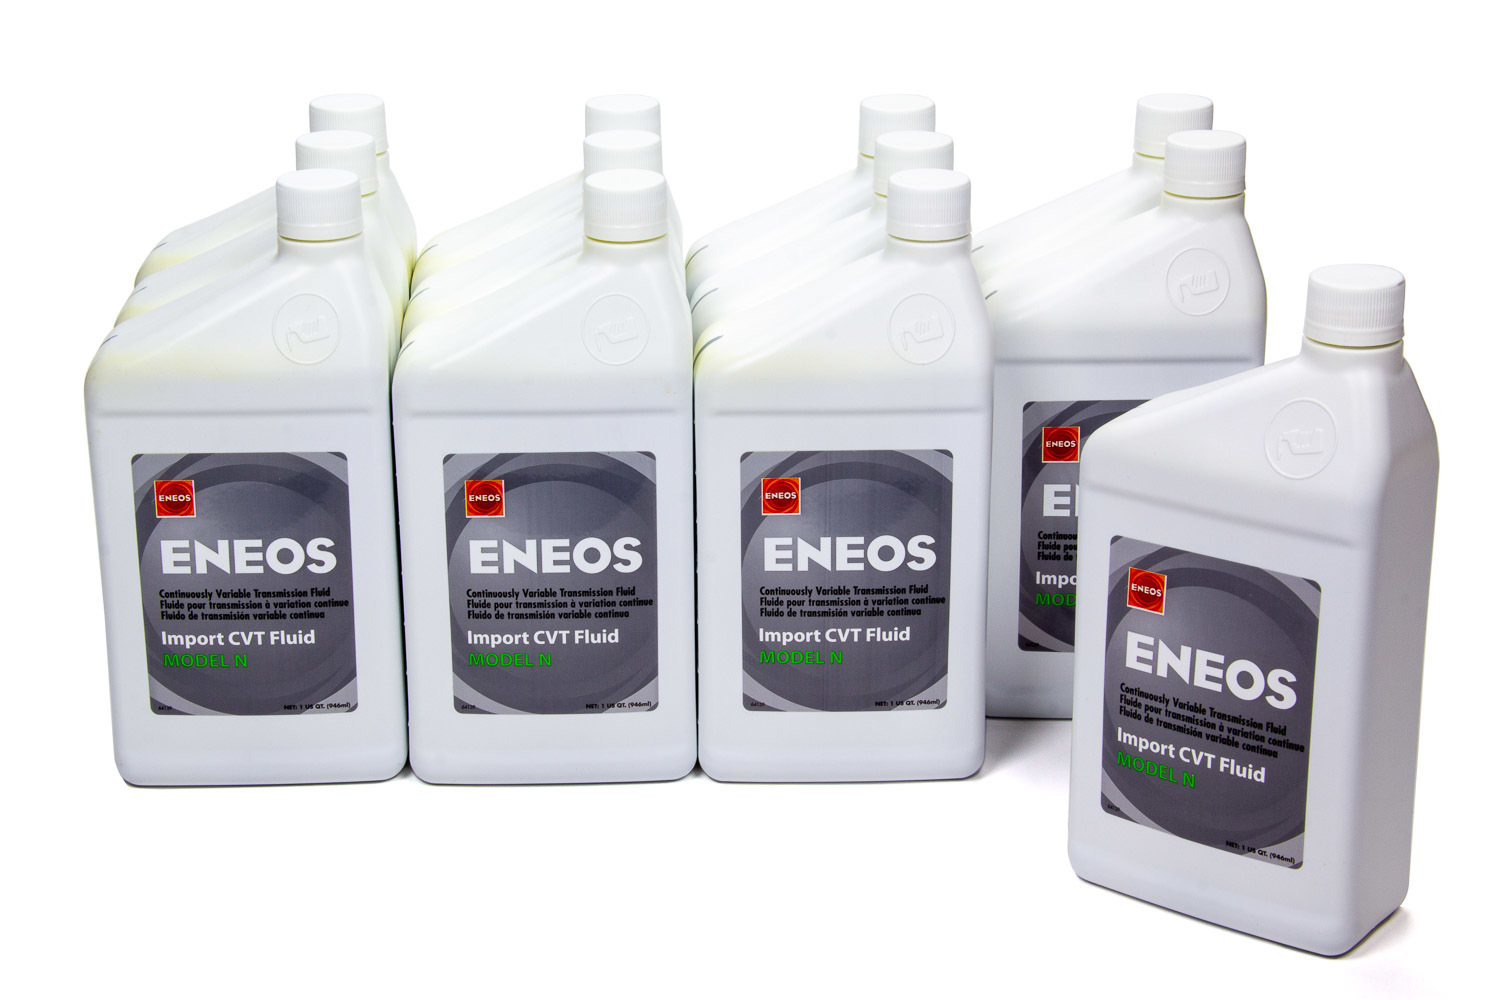 Eneos 3057-301 Transmission Fluid, Import CVT, Model N, Synthetic, 1 qt Bottle, Nissan Continuously Variable Transmissions, Set of 12